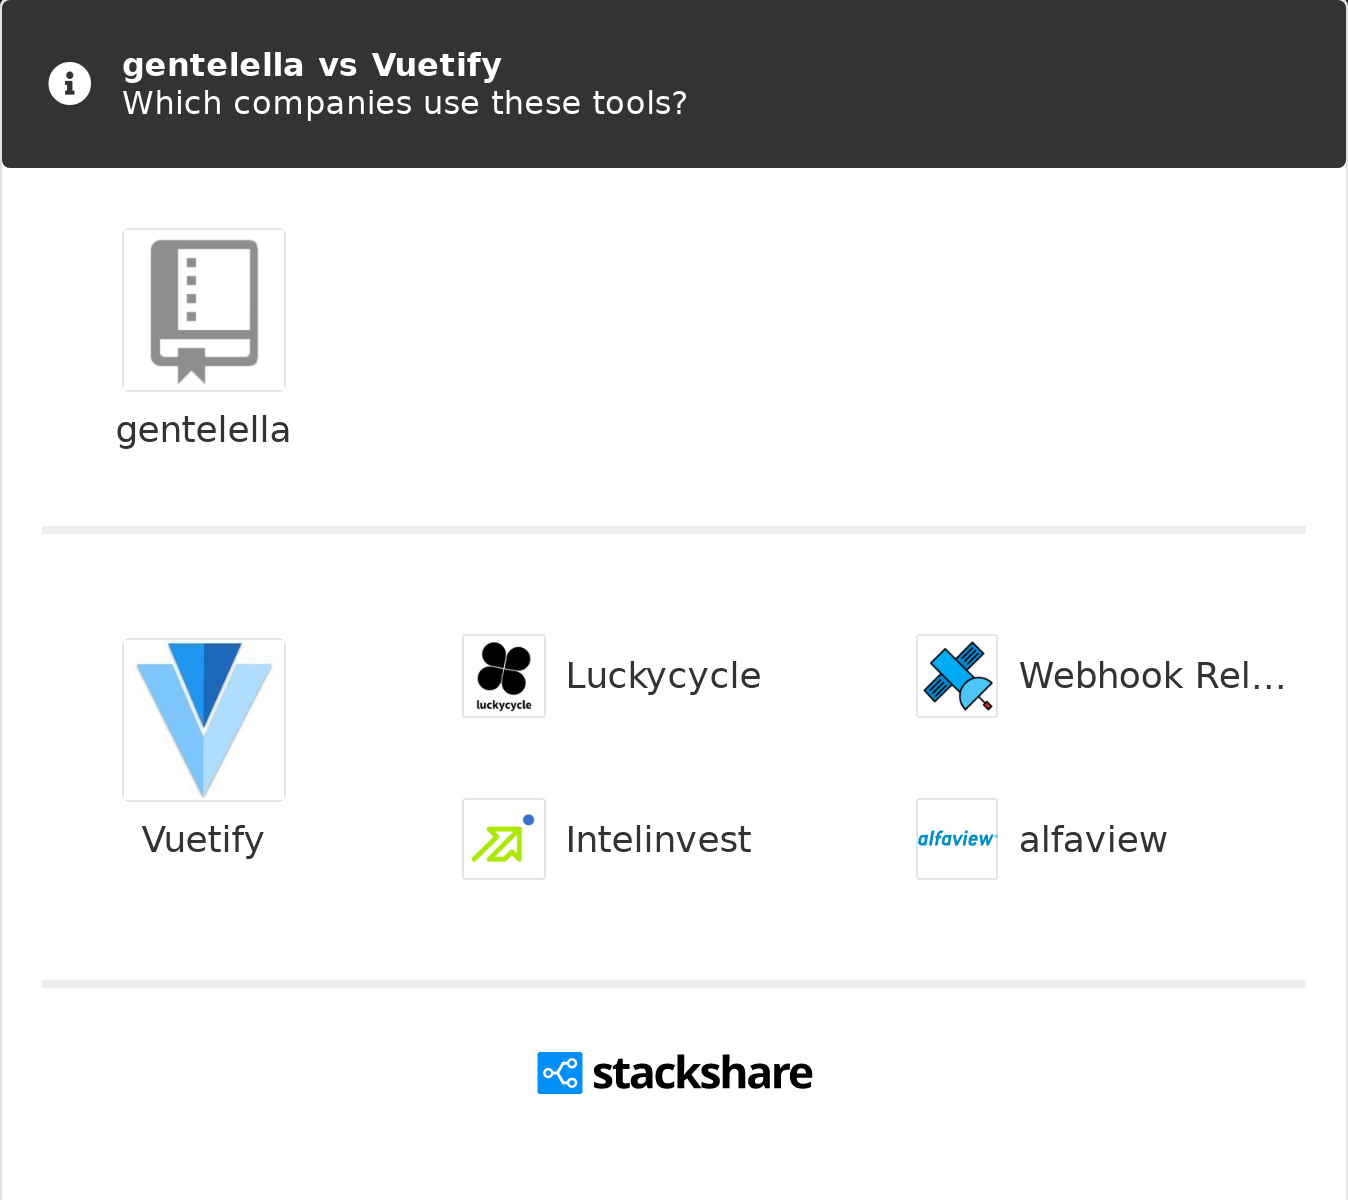 gentelella vs Vuetify | What are the differences?